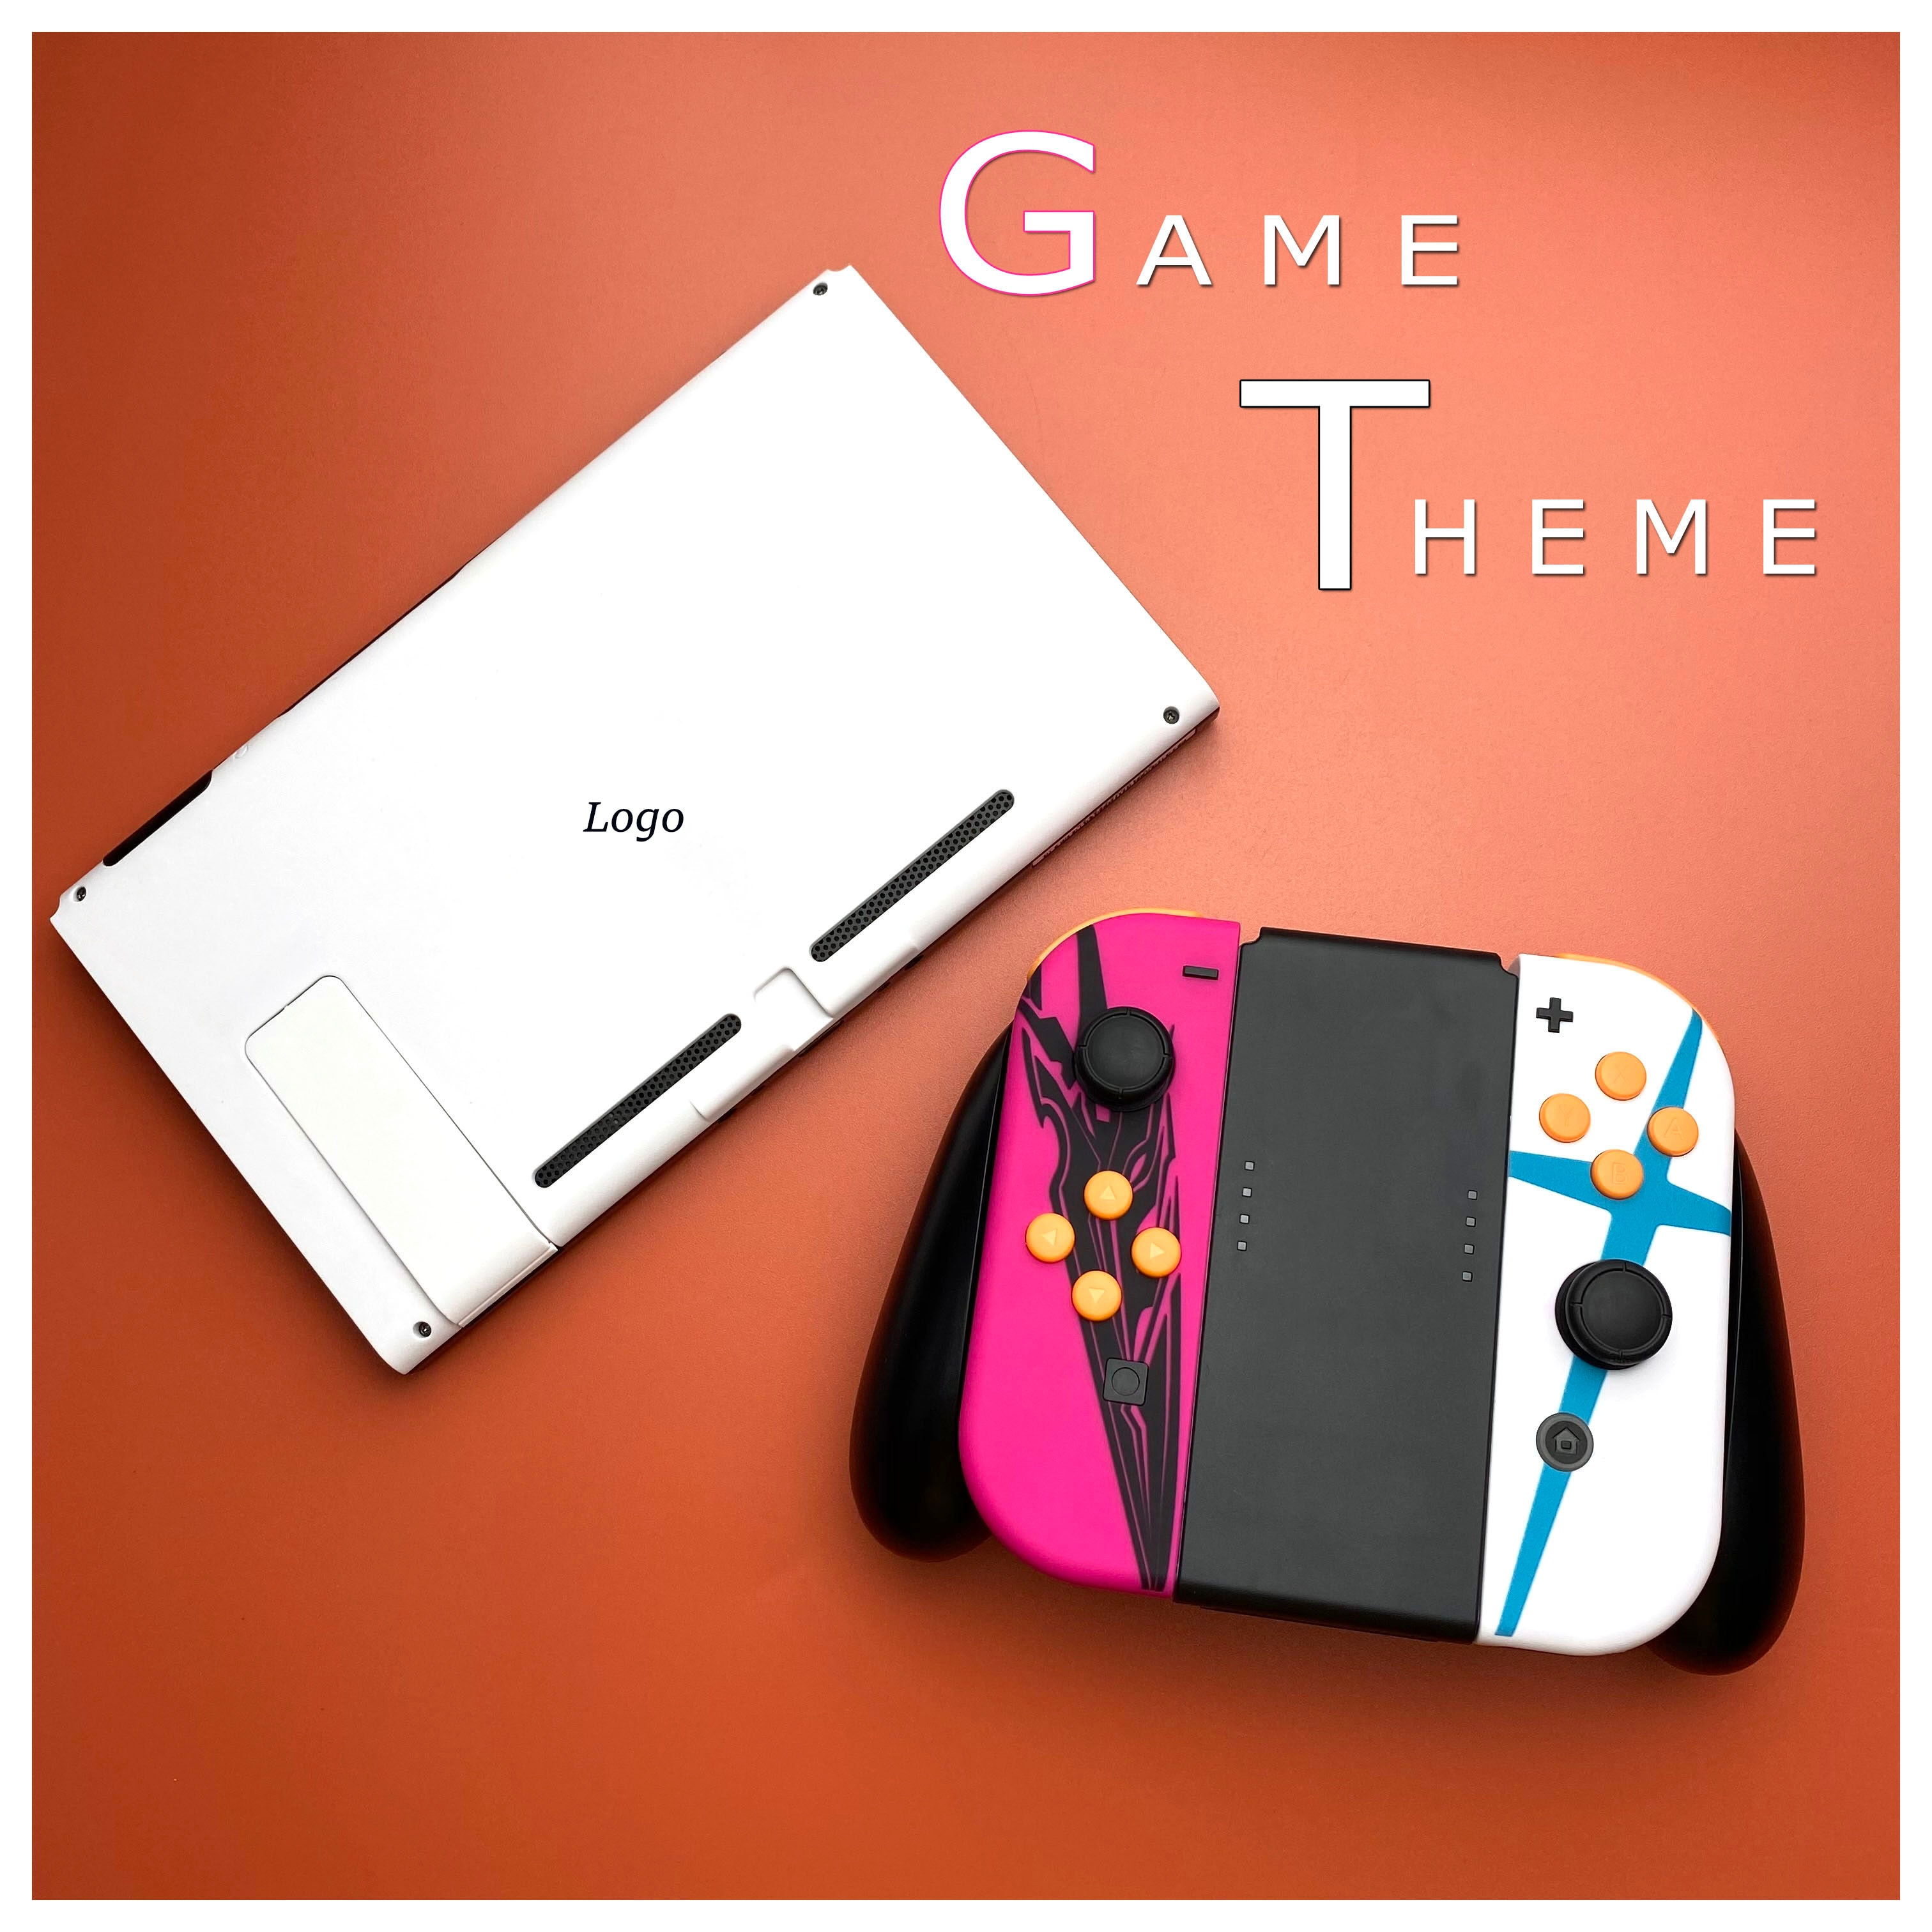 Game Theme NS Switch Housing Shell Case Replacement Joy-Con Repair Kit Case Cover Housing Shell for Nintendos Switch Controller